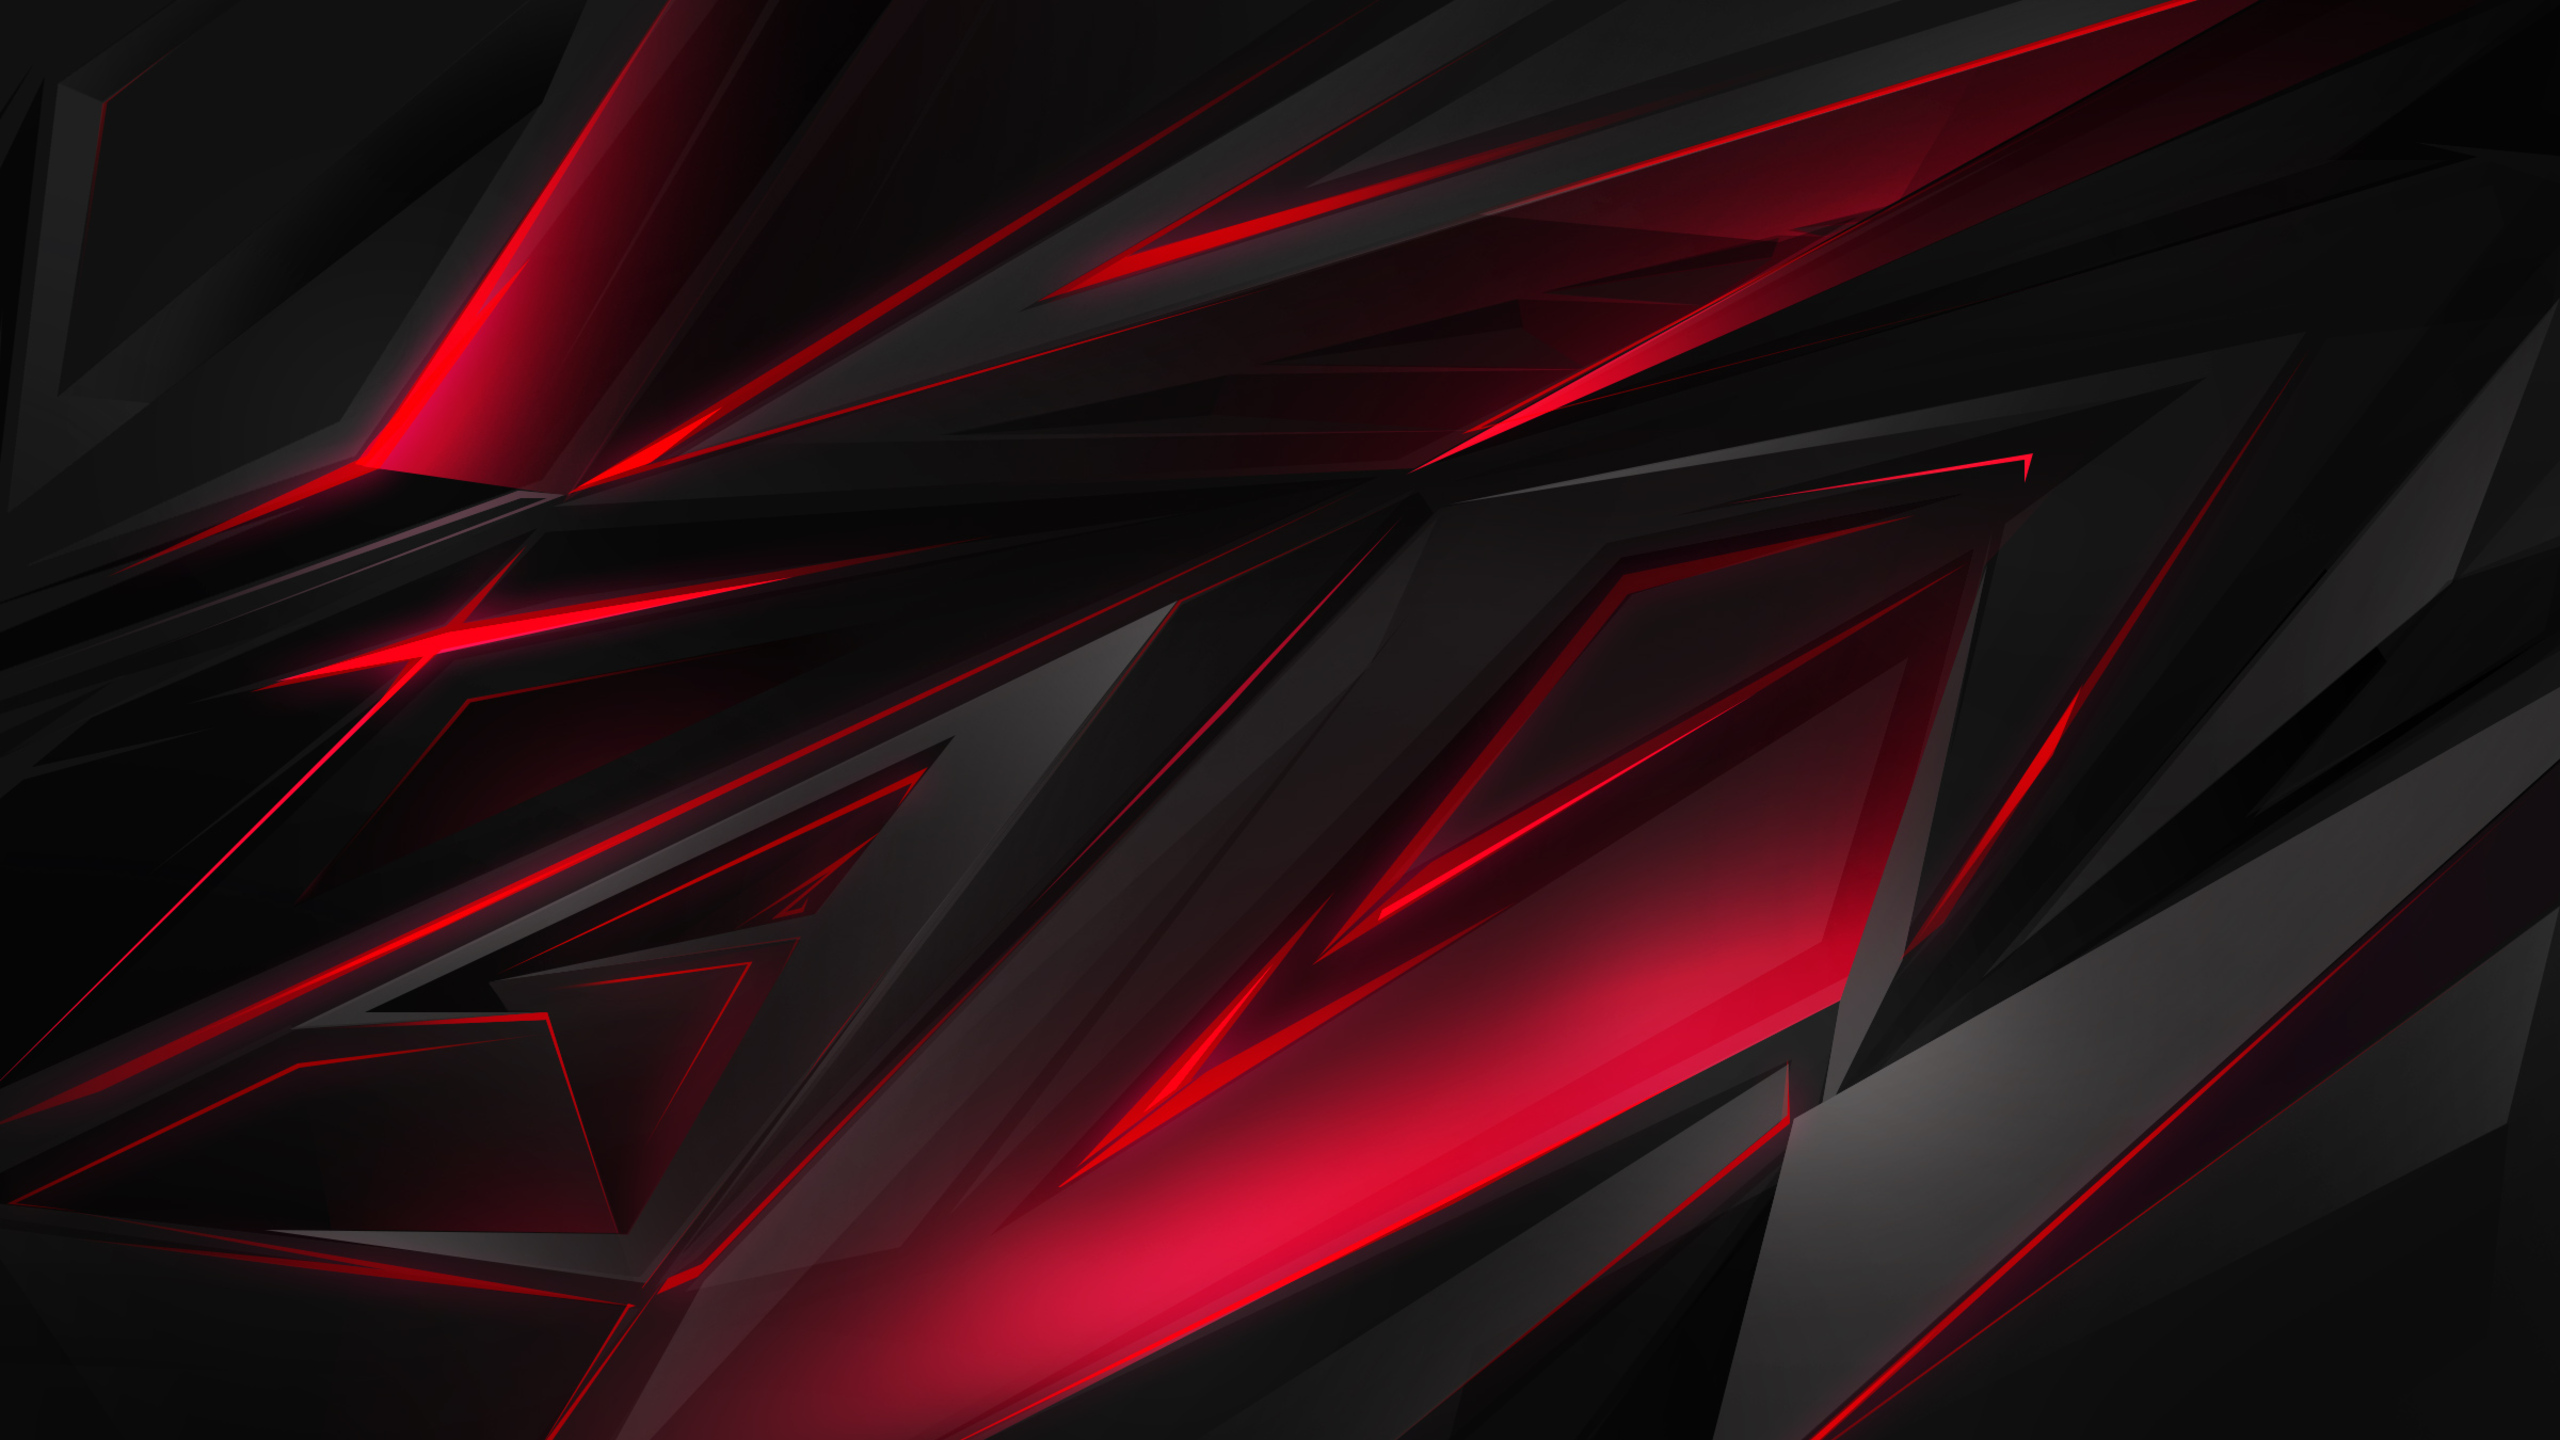 2560x1440 Polygonal Abstract Red Dark Background 1440P